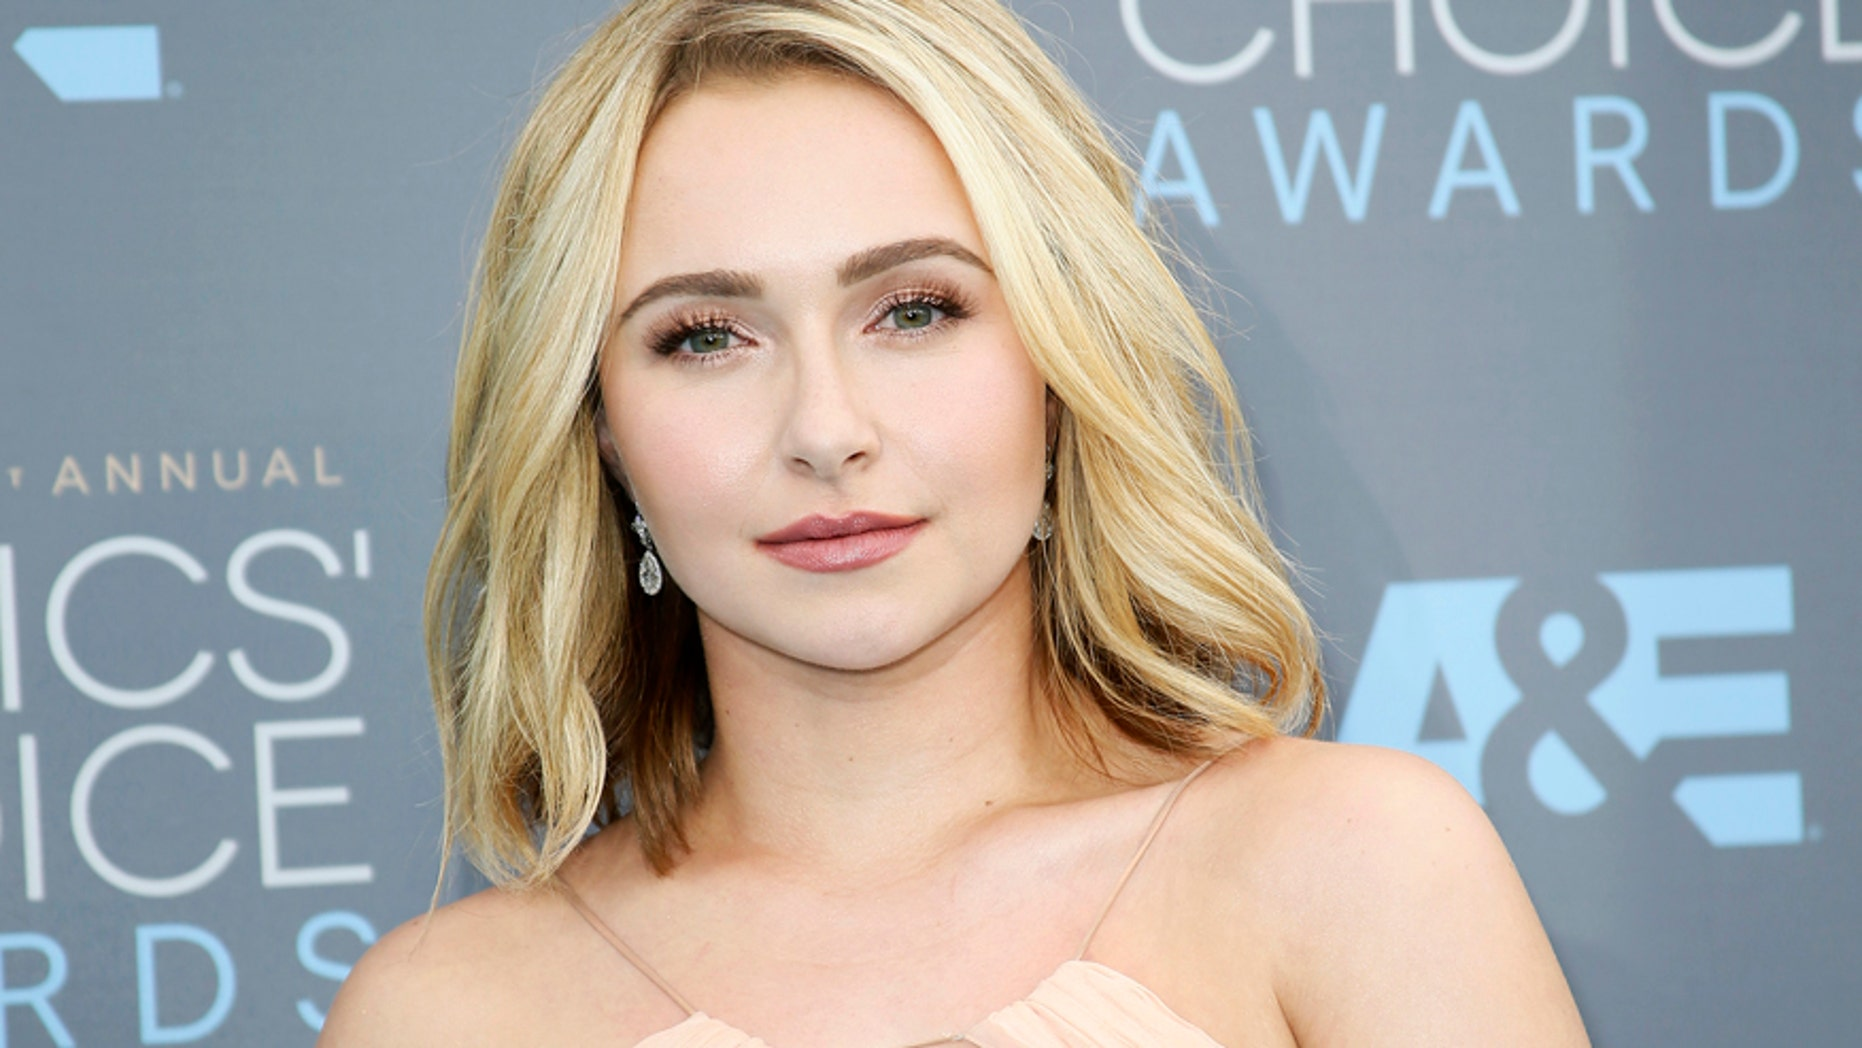 "Hayden Panettiere is the latest to celebrity to share their thoughts on the chemical chemtrails conspiracy theory. Those who believe in chemtrails think that the white residue left behind by airplanes are chemicals ordered by the government for undisclosed reasons. She <a href=""https://twitter.com/haydenpanettier/status/843208753084317696"" target=""_blank"">tweeted</a>, ""What the heck r they spraying over us?! It's been happening for years but only this extreme for the past few months."""